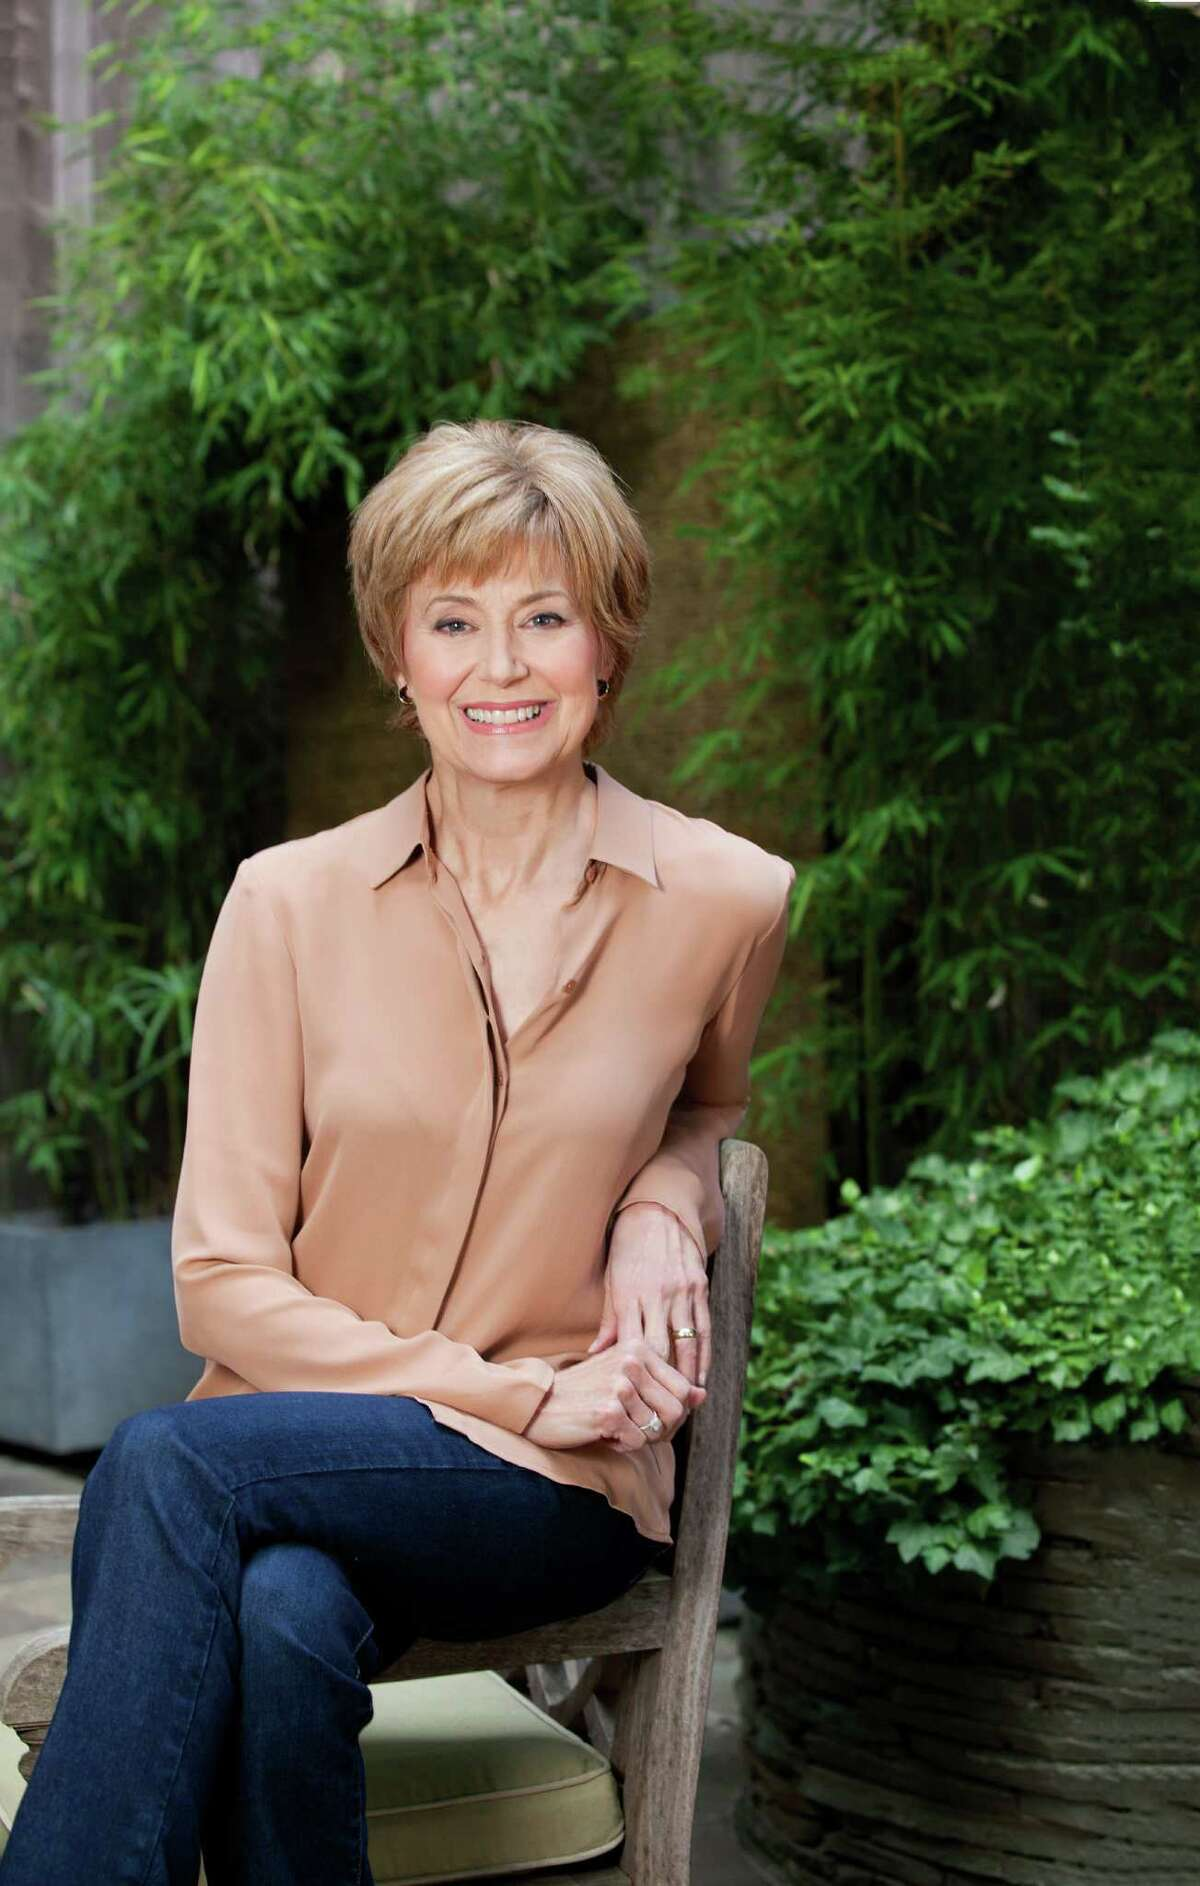 Broadcast journalist Jane Pauley will talk about her new book